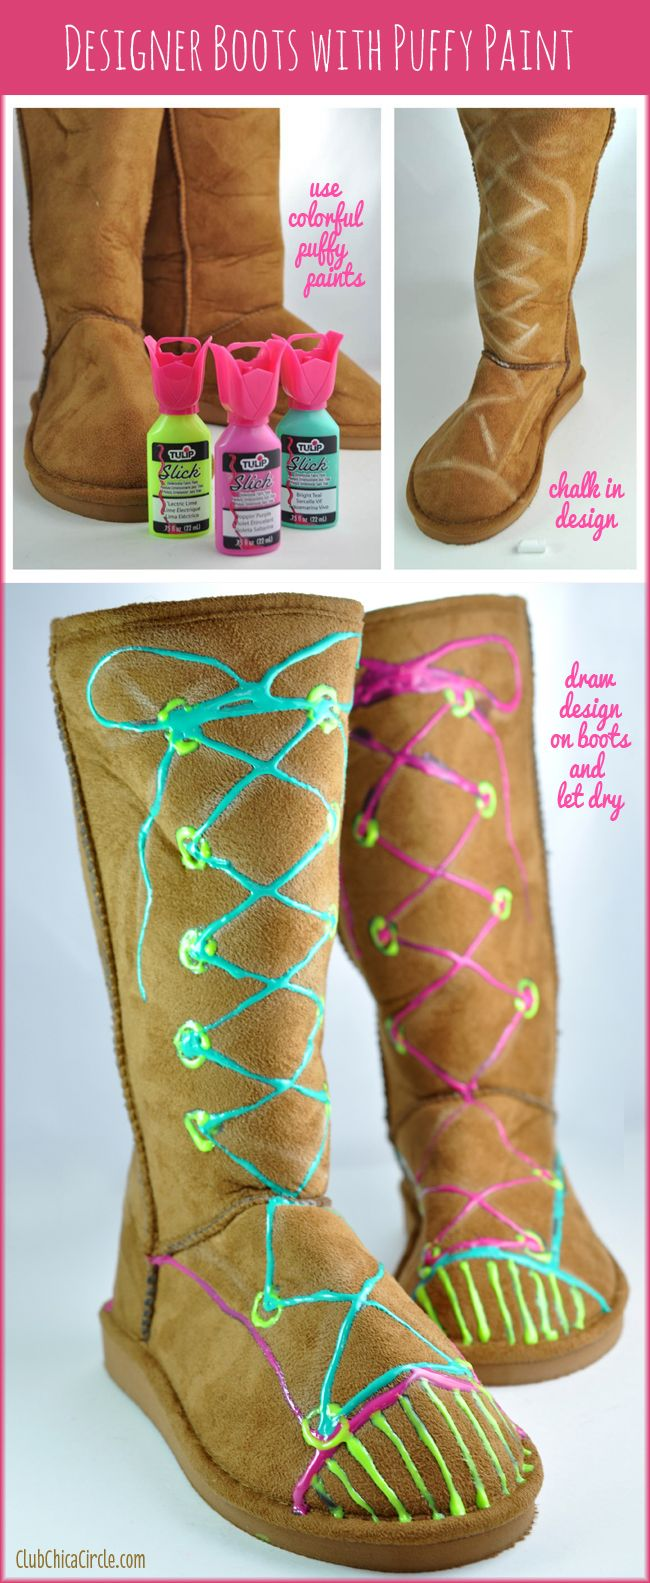 Puffy paint designs - What A Great Idea Decorate Ugg Style Boots With Puffy Paint